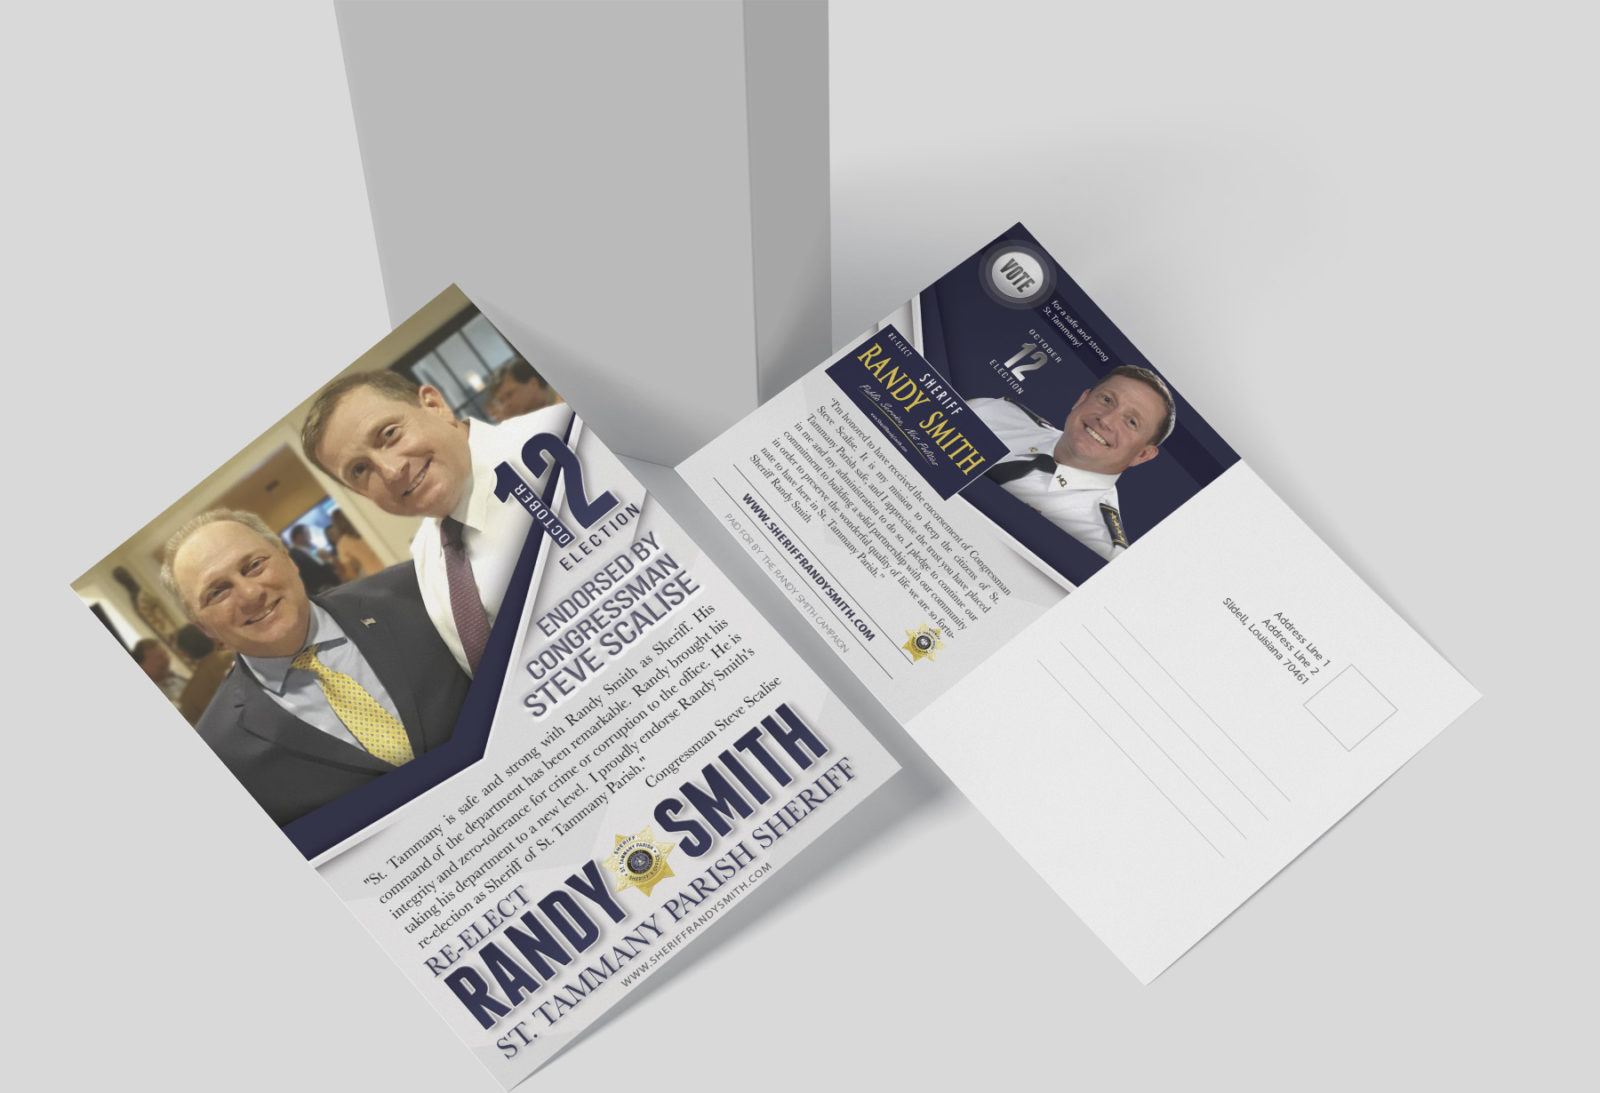 Scalise Mail out